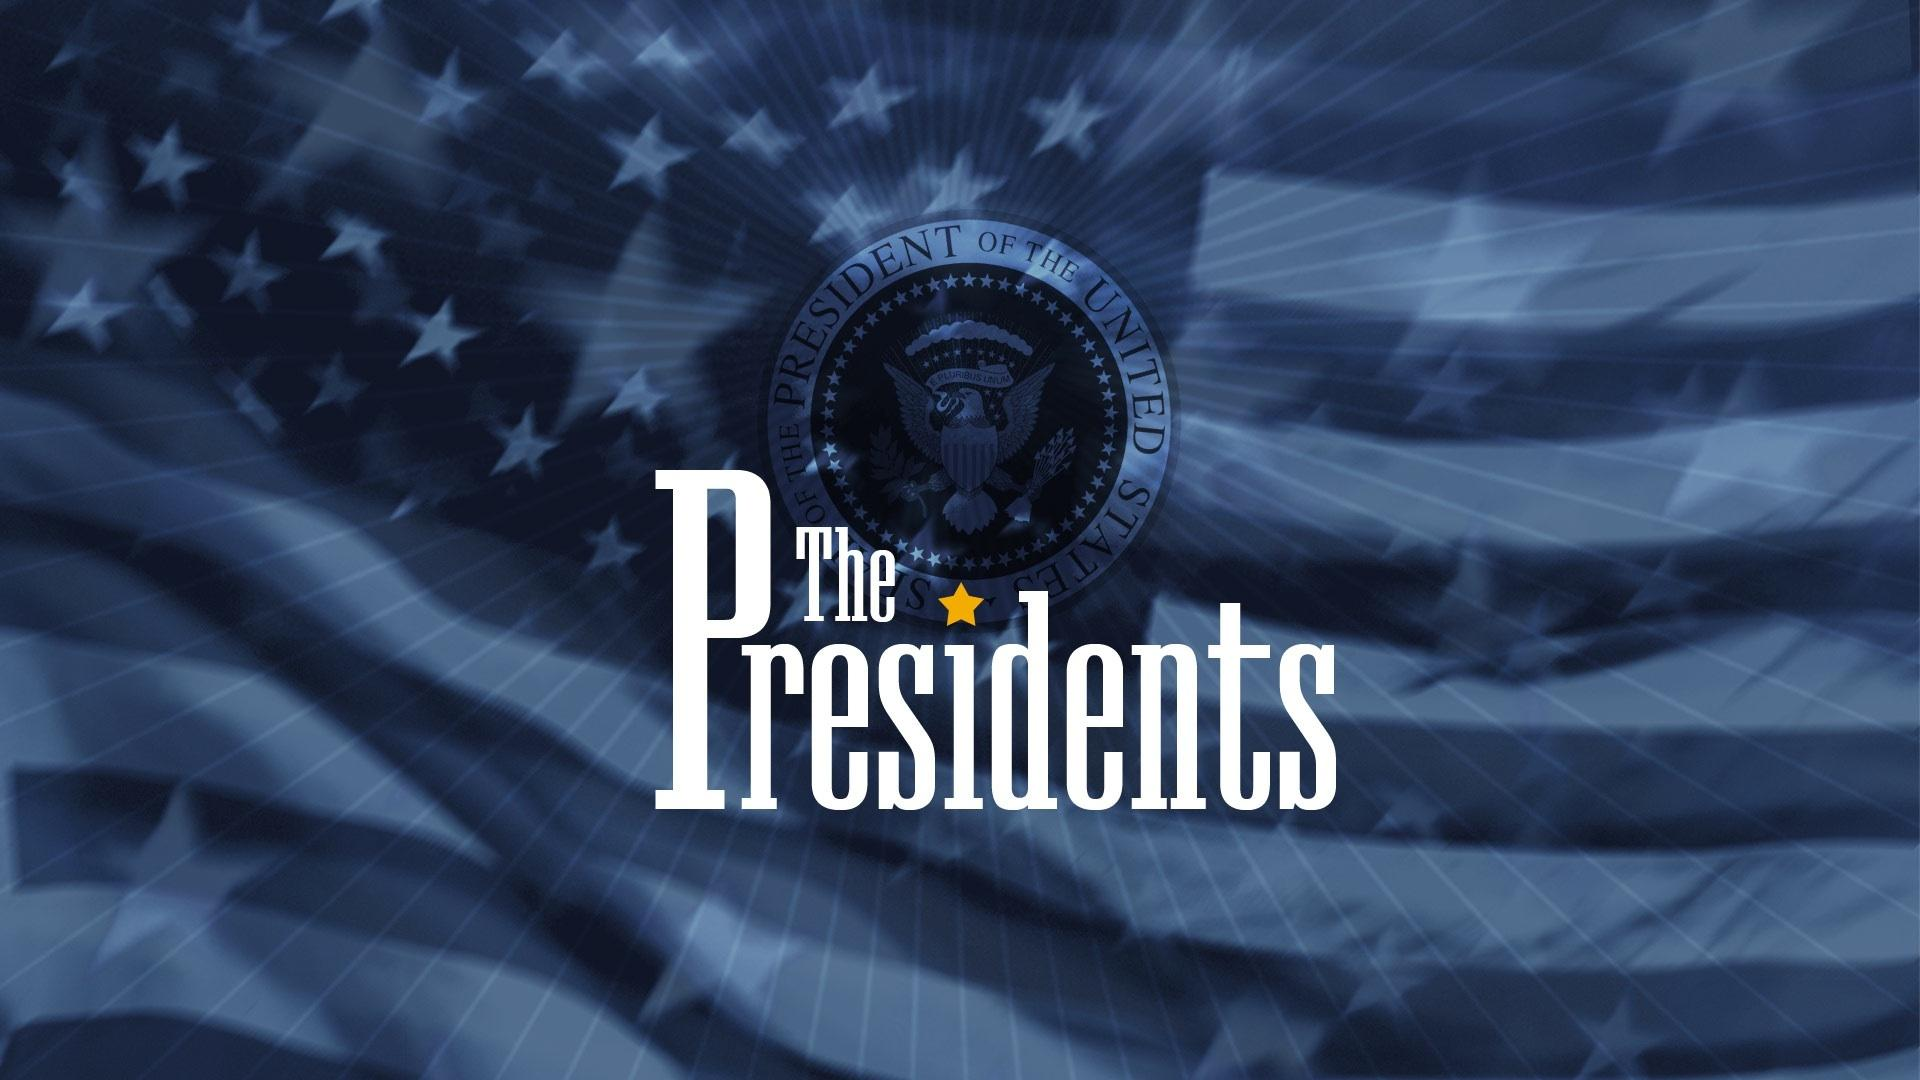 The Presidents, 2016